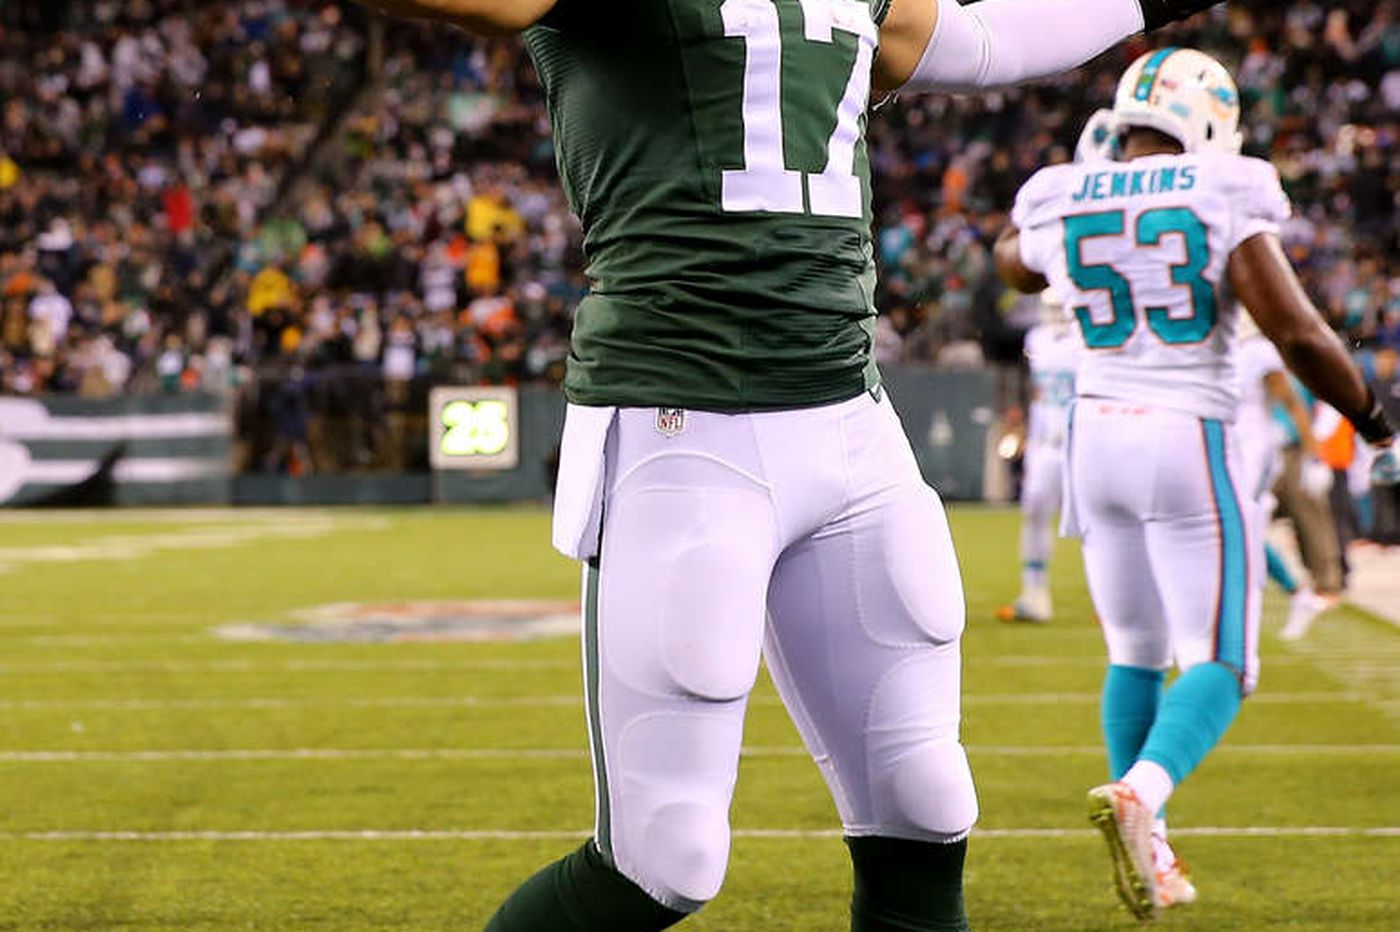 Dolphins rally to down Jets